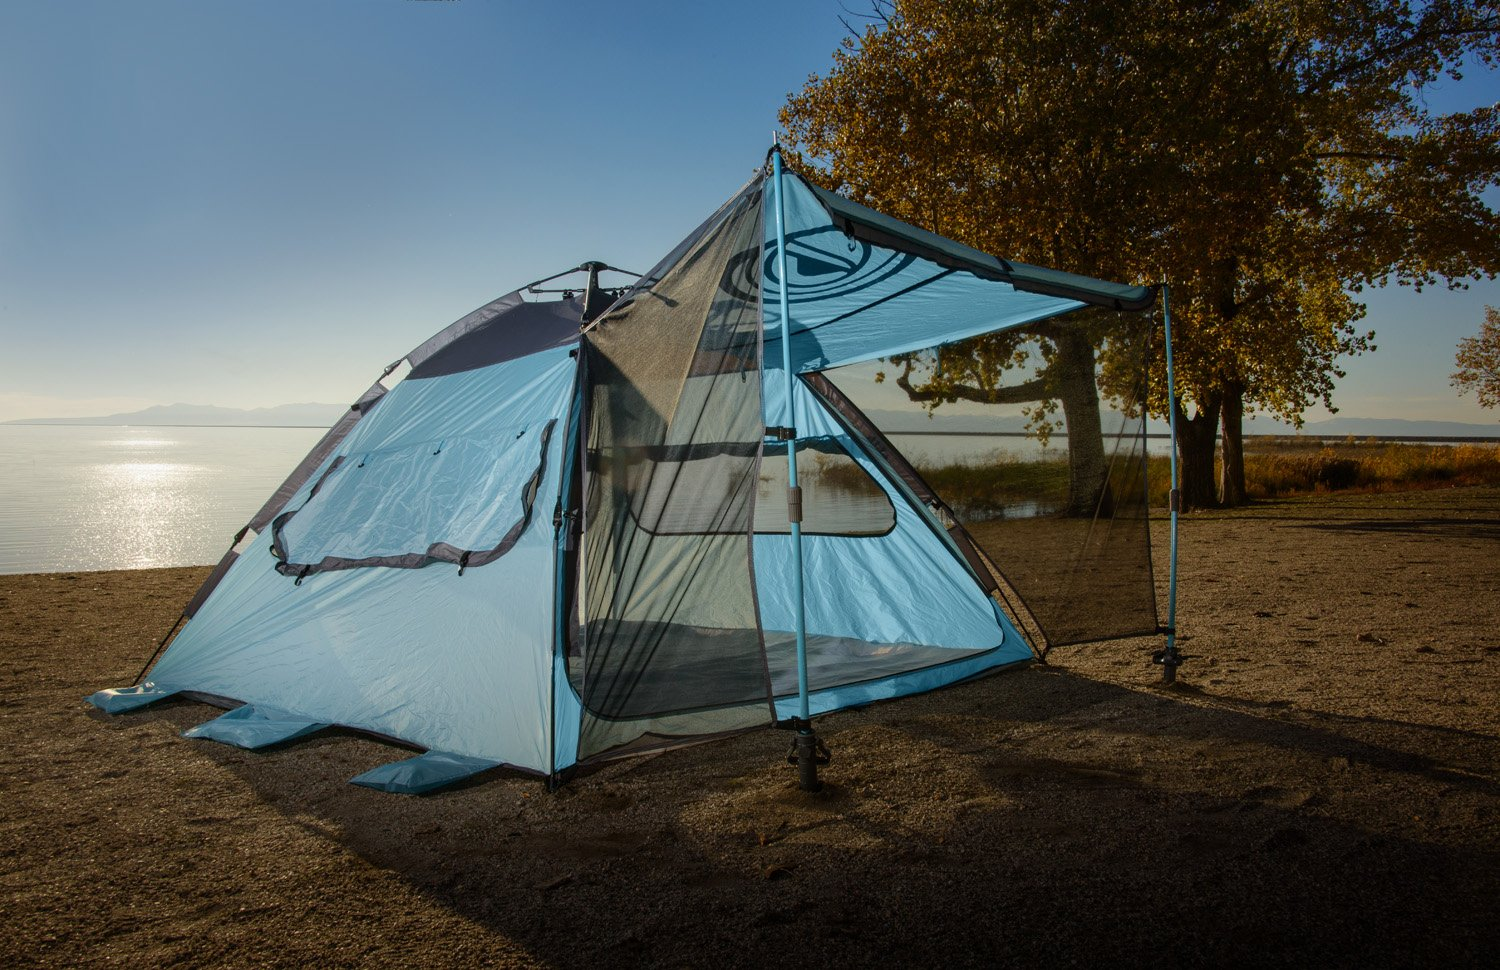 Amazon.com Quick-Up Cabana Style XL Beach Tentu2013 2 in 1 Sun Canopy And Summer Shelteru2013 Perfect For Family Outings C&ing Trips Or Lakeside Activities ... & Amazon.com: Quick-Up Cabana Style XL Beach Tentu2013 2 in 1 Sun Canopy ...